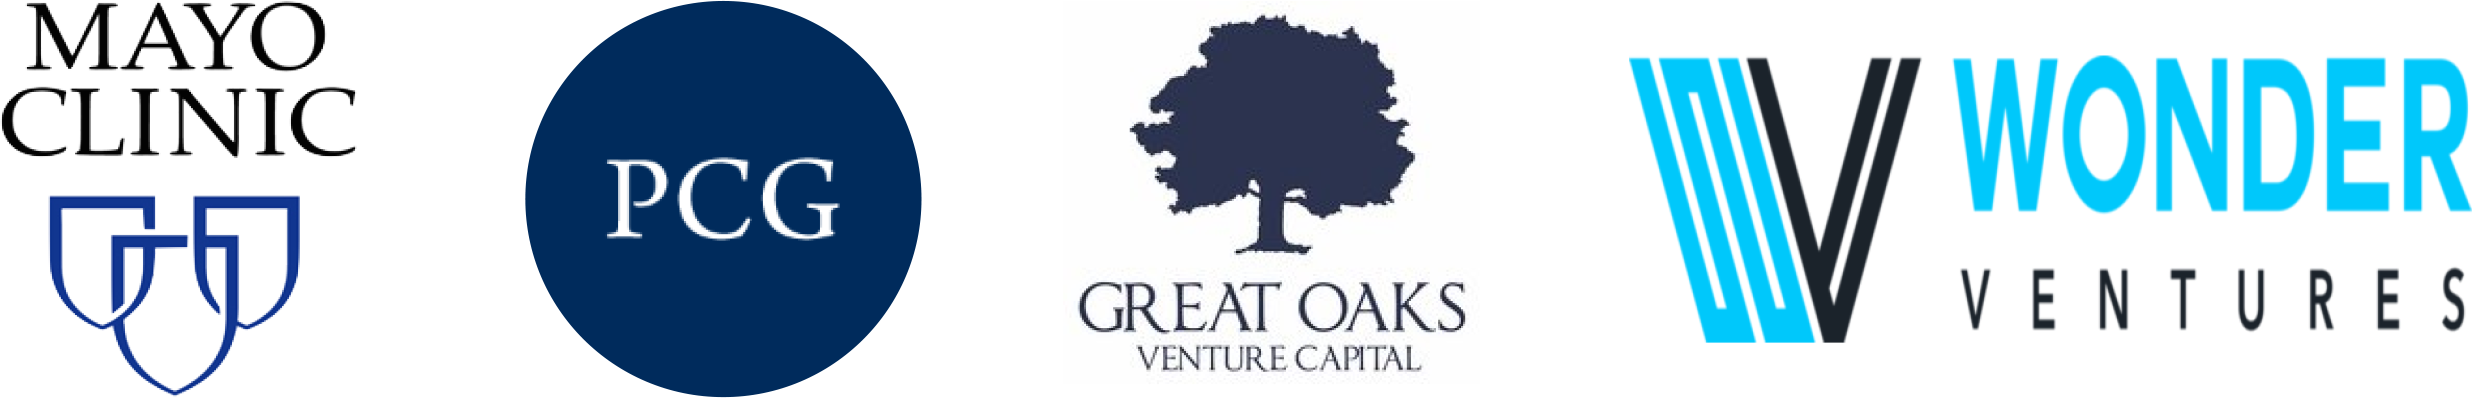 Logos for Mayo Clinic, PCG, Great Oaks Venture Capital, and Wonder Ventures